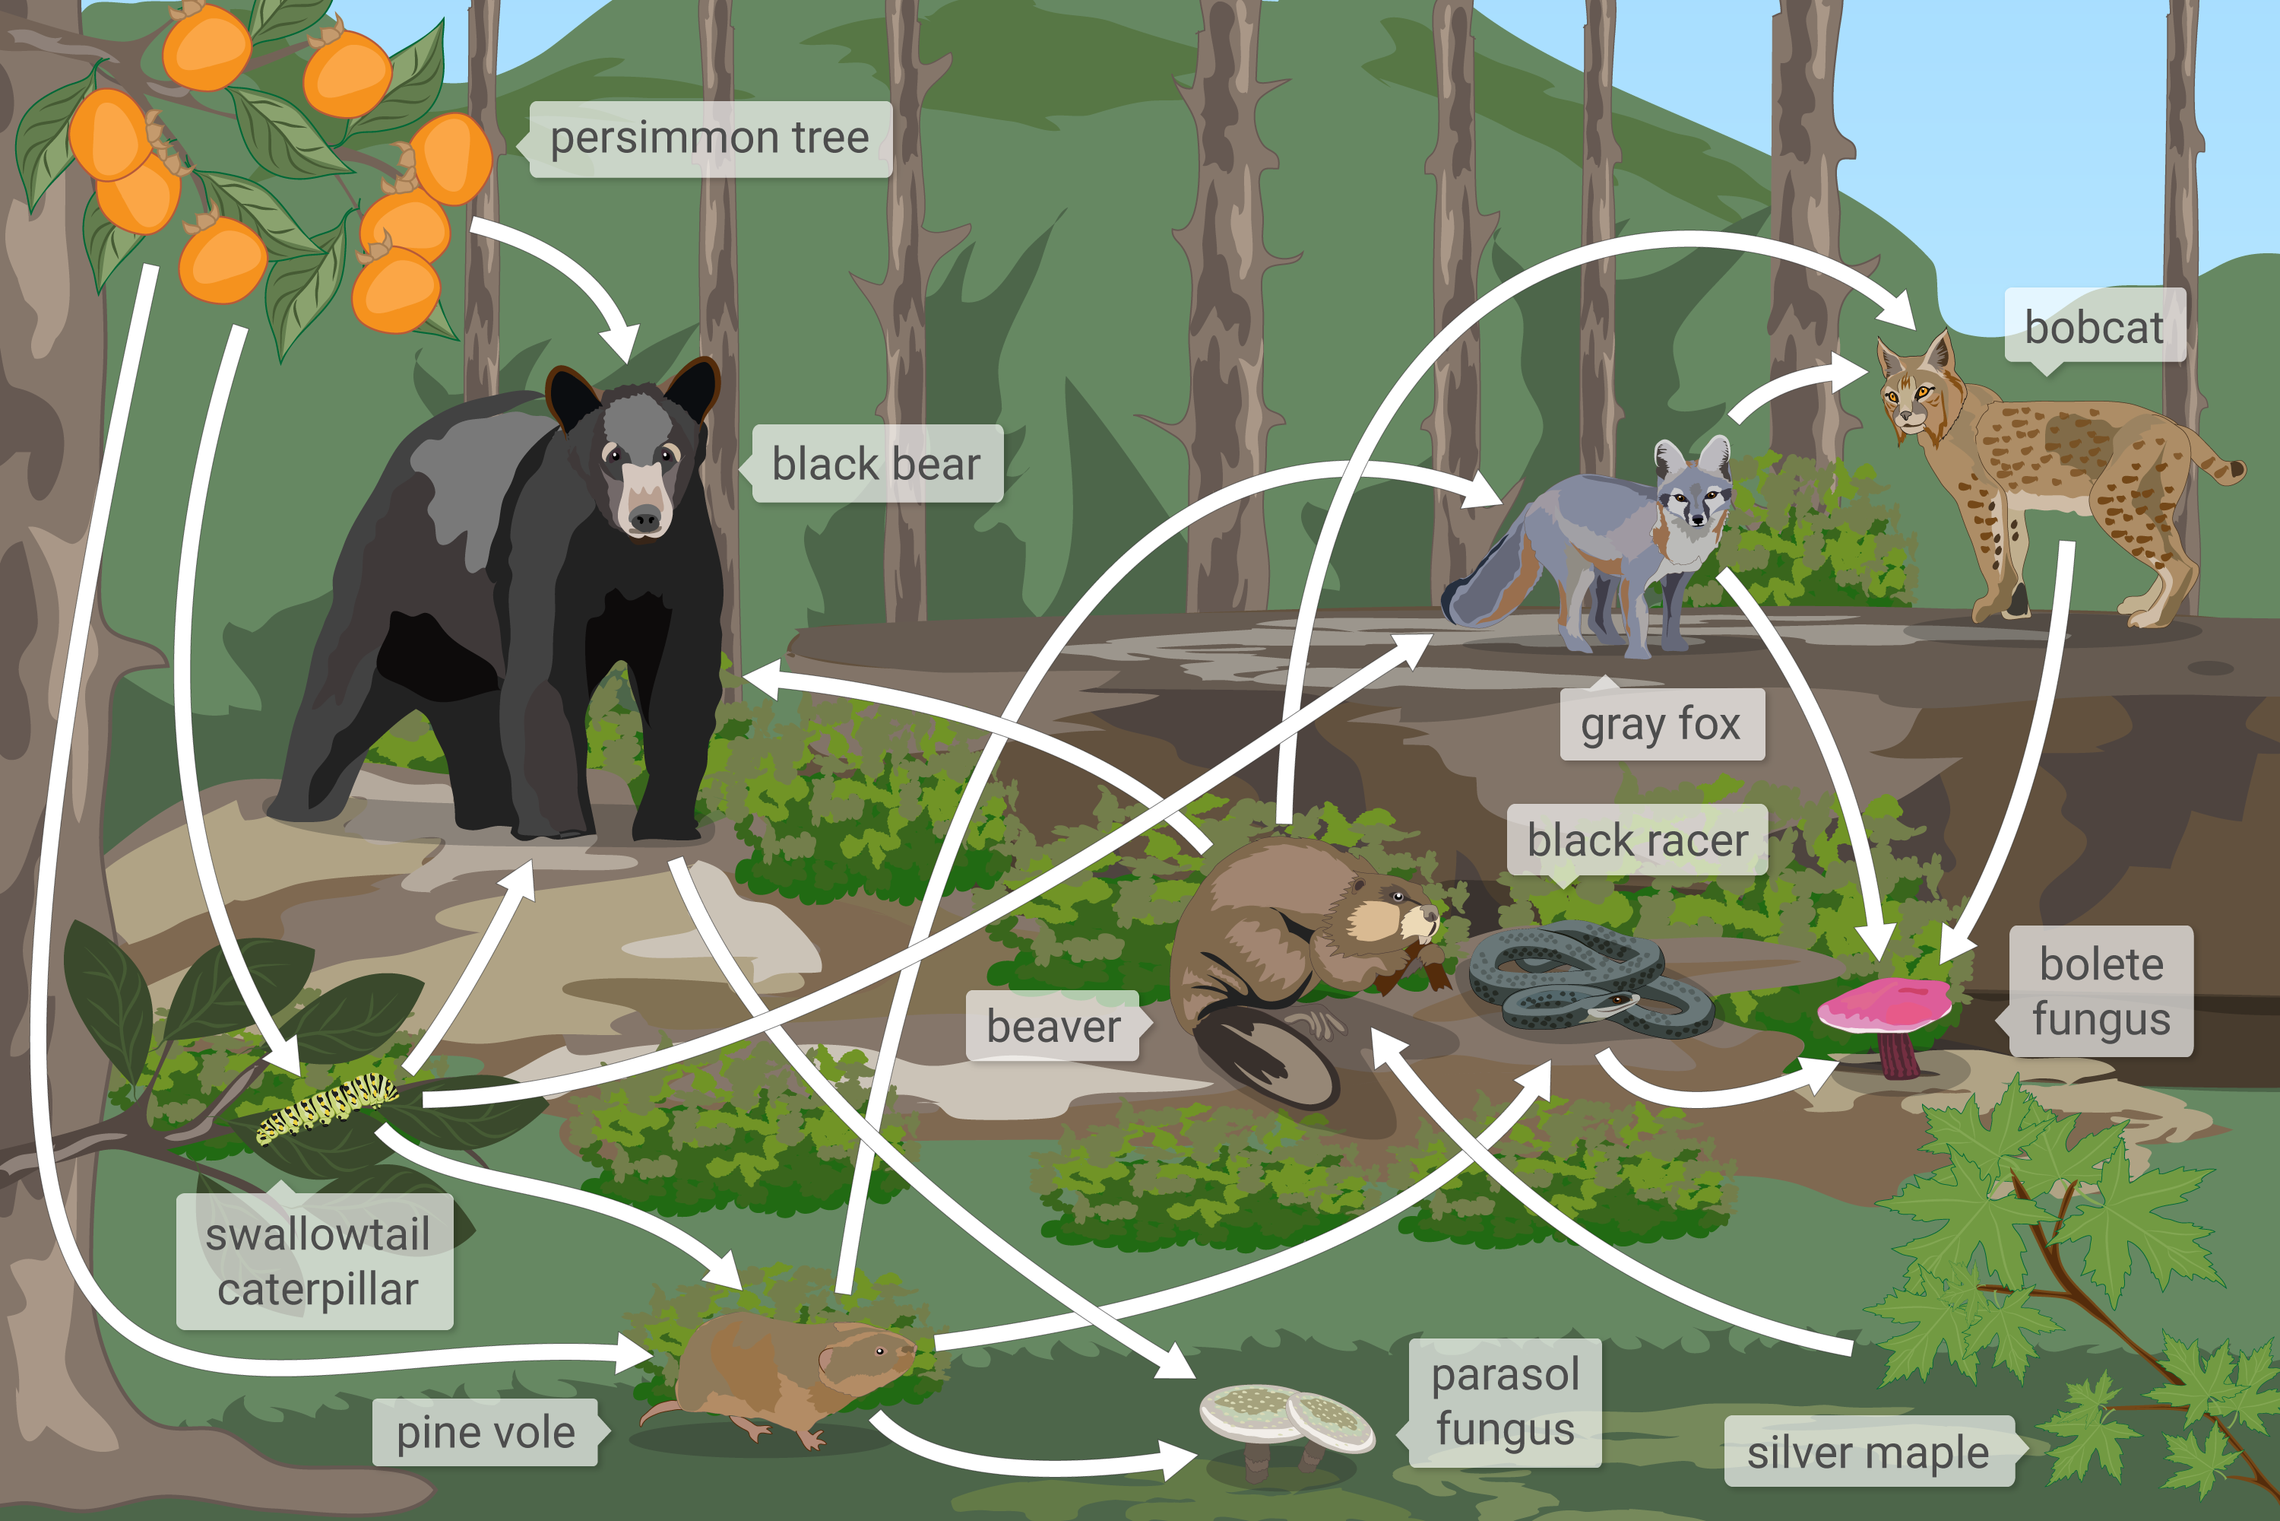 7Th Grade Science Help ixl | interpret food webs i | 7th grade science